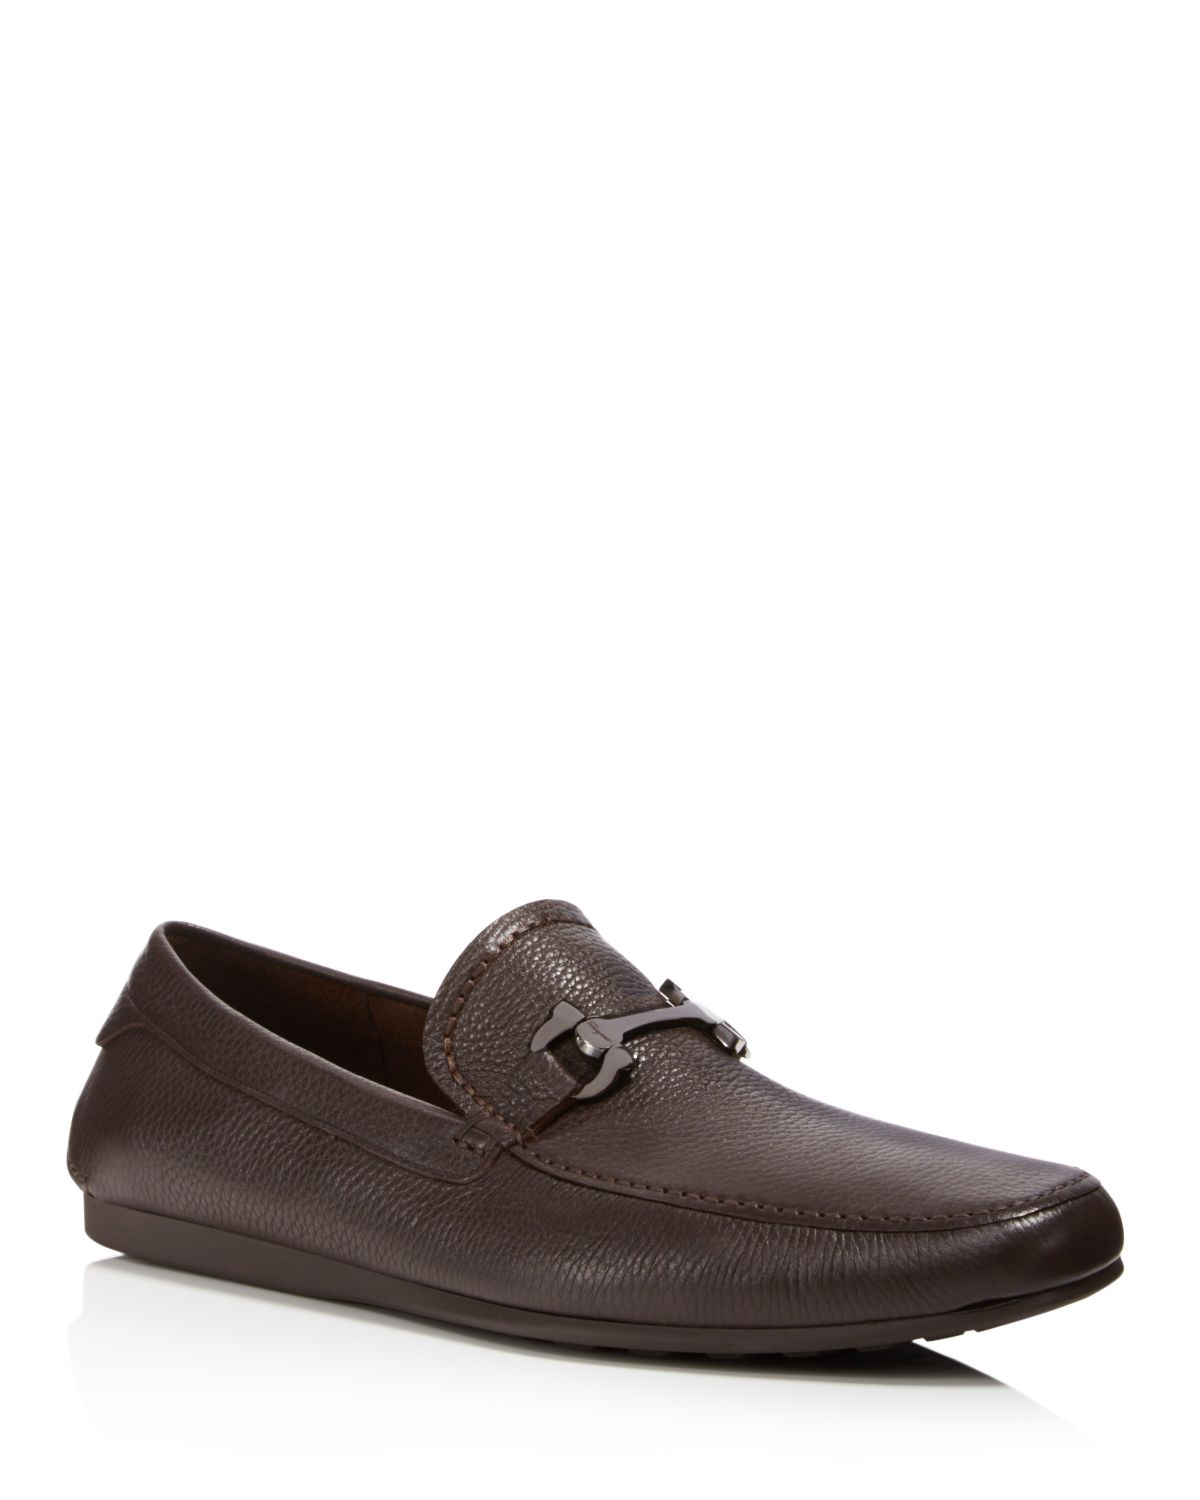 Salvatore FerragamoMen's Cancun 2 Gancini Tumbled Leather Drivers